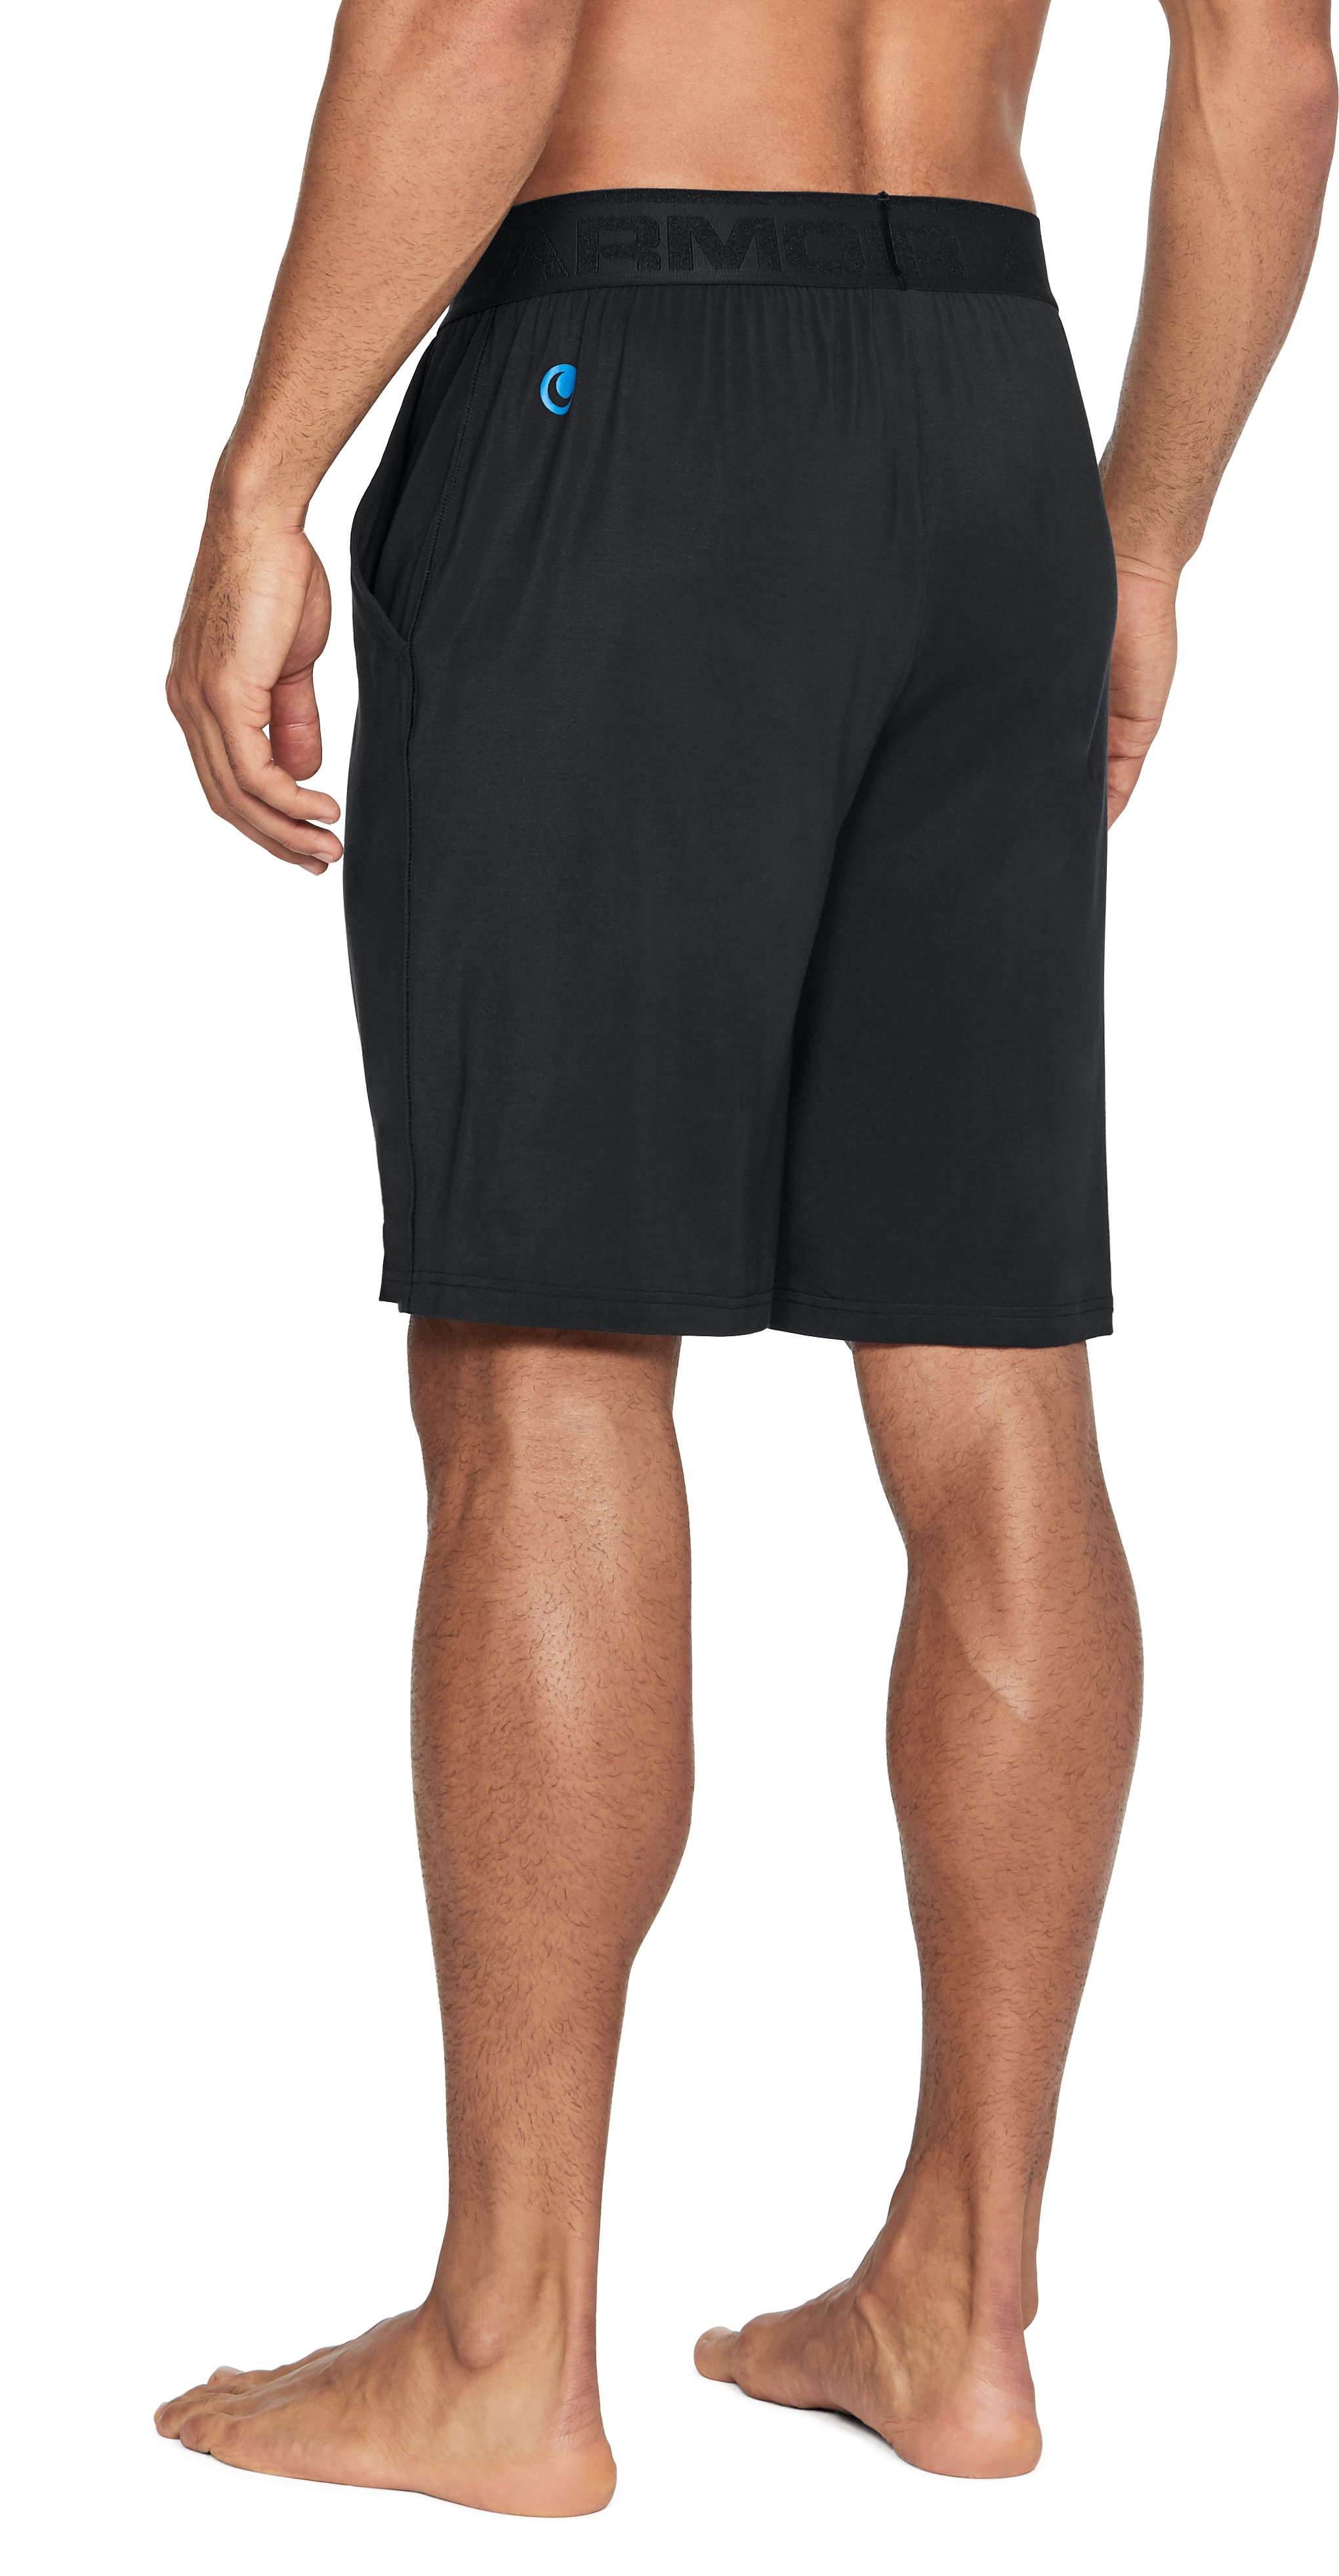 Men's Athlete Recovery Ultra Comfort Sleepwear Shorts, Black ,